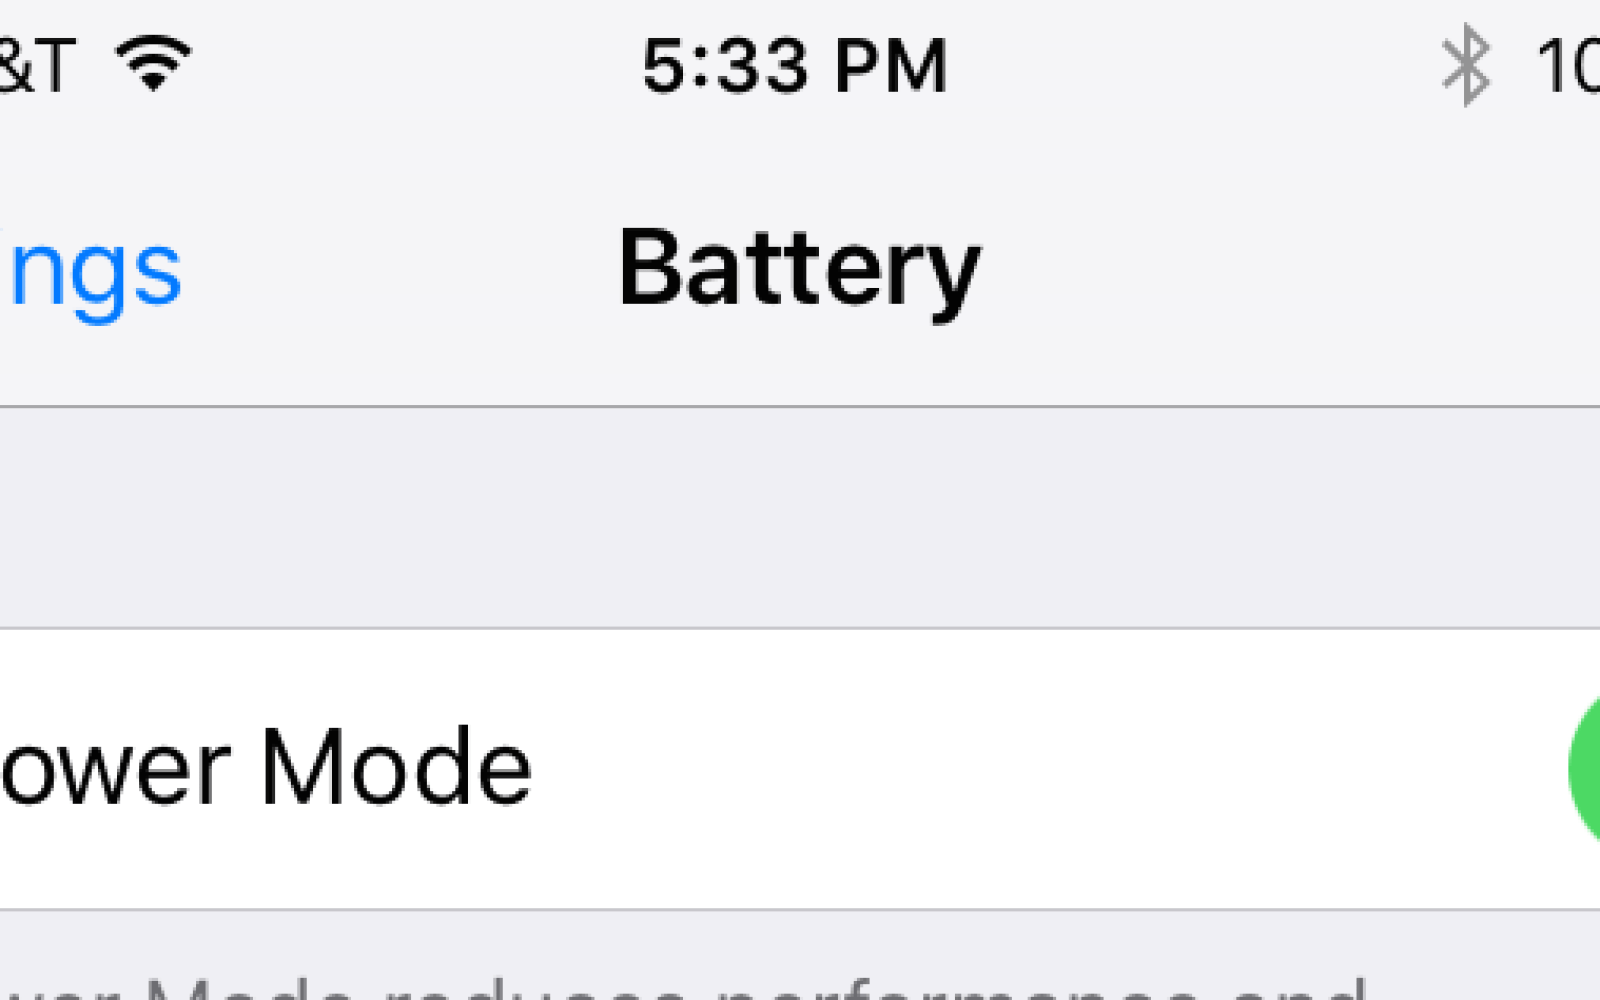 Low Power mode will turn your iPhone 6 into a cross between an iPhone 5 and 5s, show benchmarks